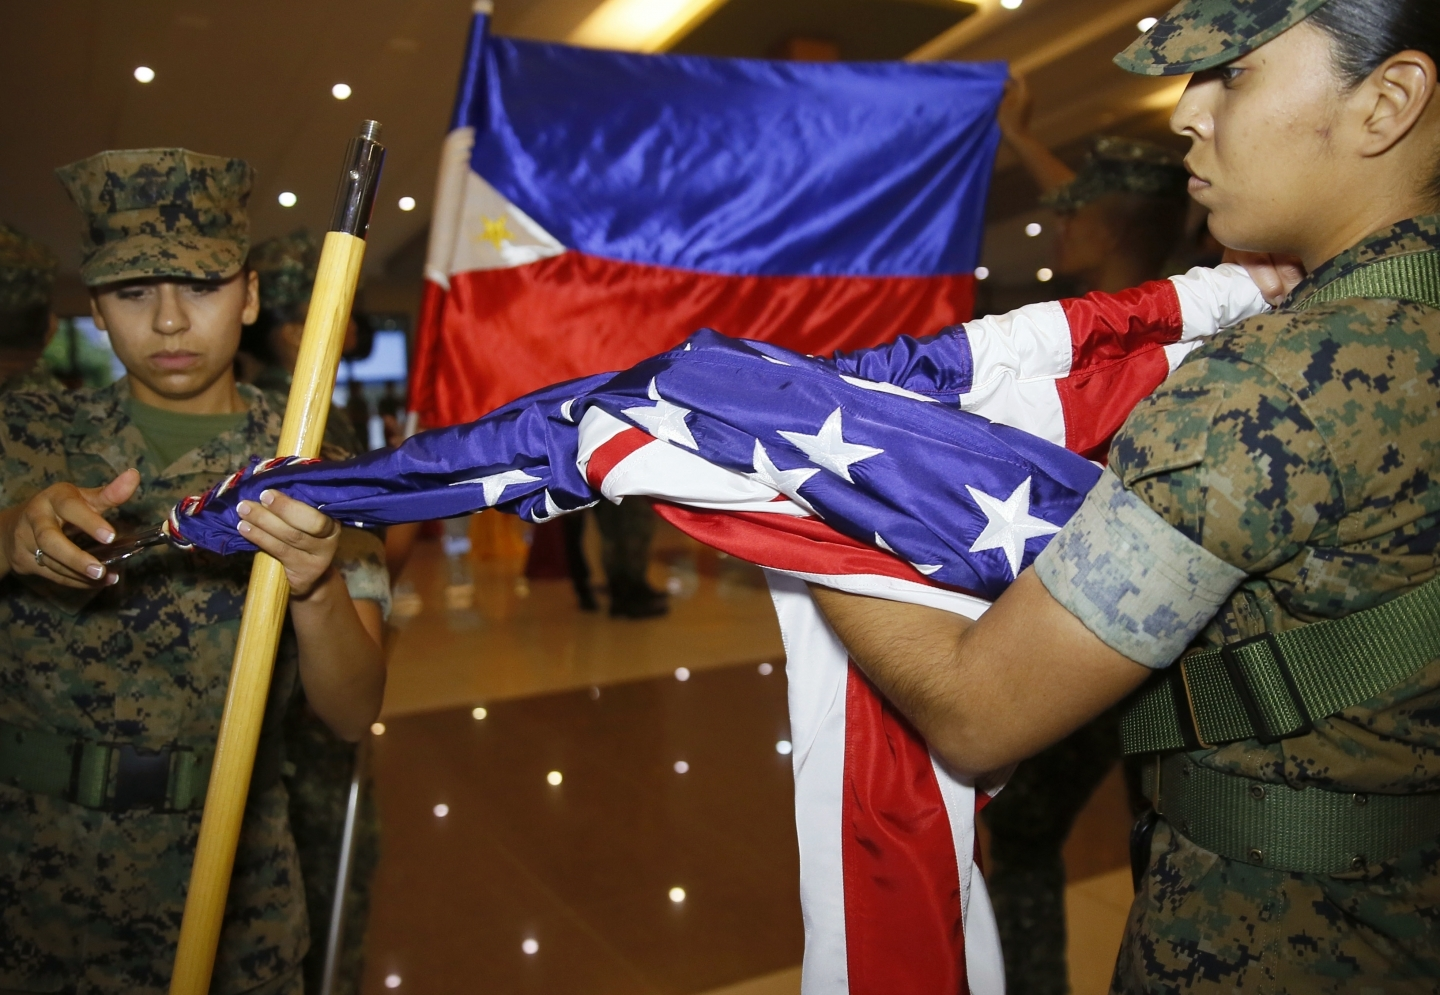 A U.S. Marine and her Philippine counterpart fold their flags near Manila on Oct. 11. Marines ended joint combat drills a day early after President Rodrigo Duterte criticized the U.S. (AP Photo/Bullit Marquez)